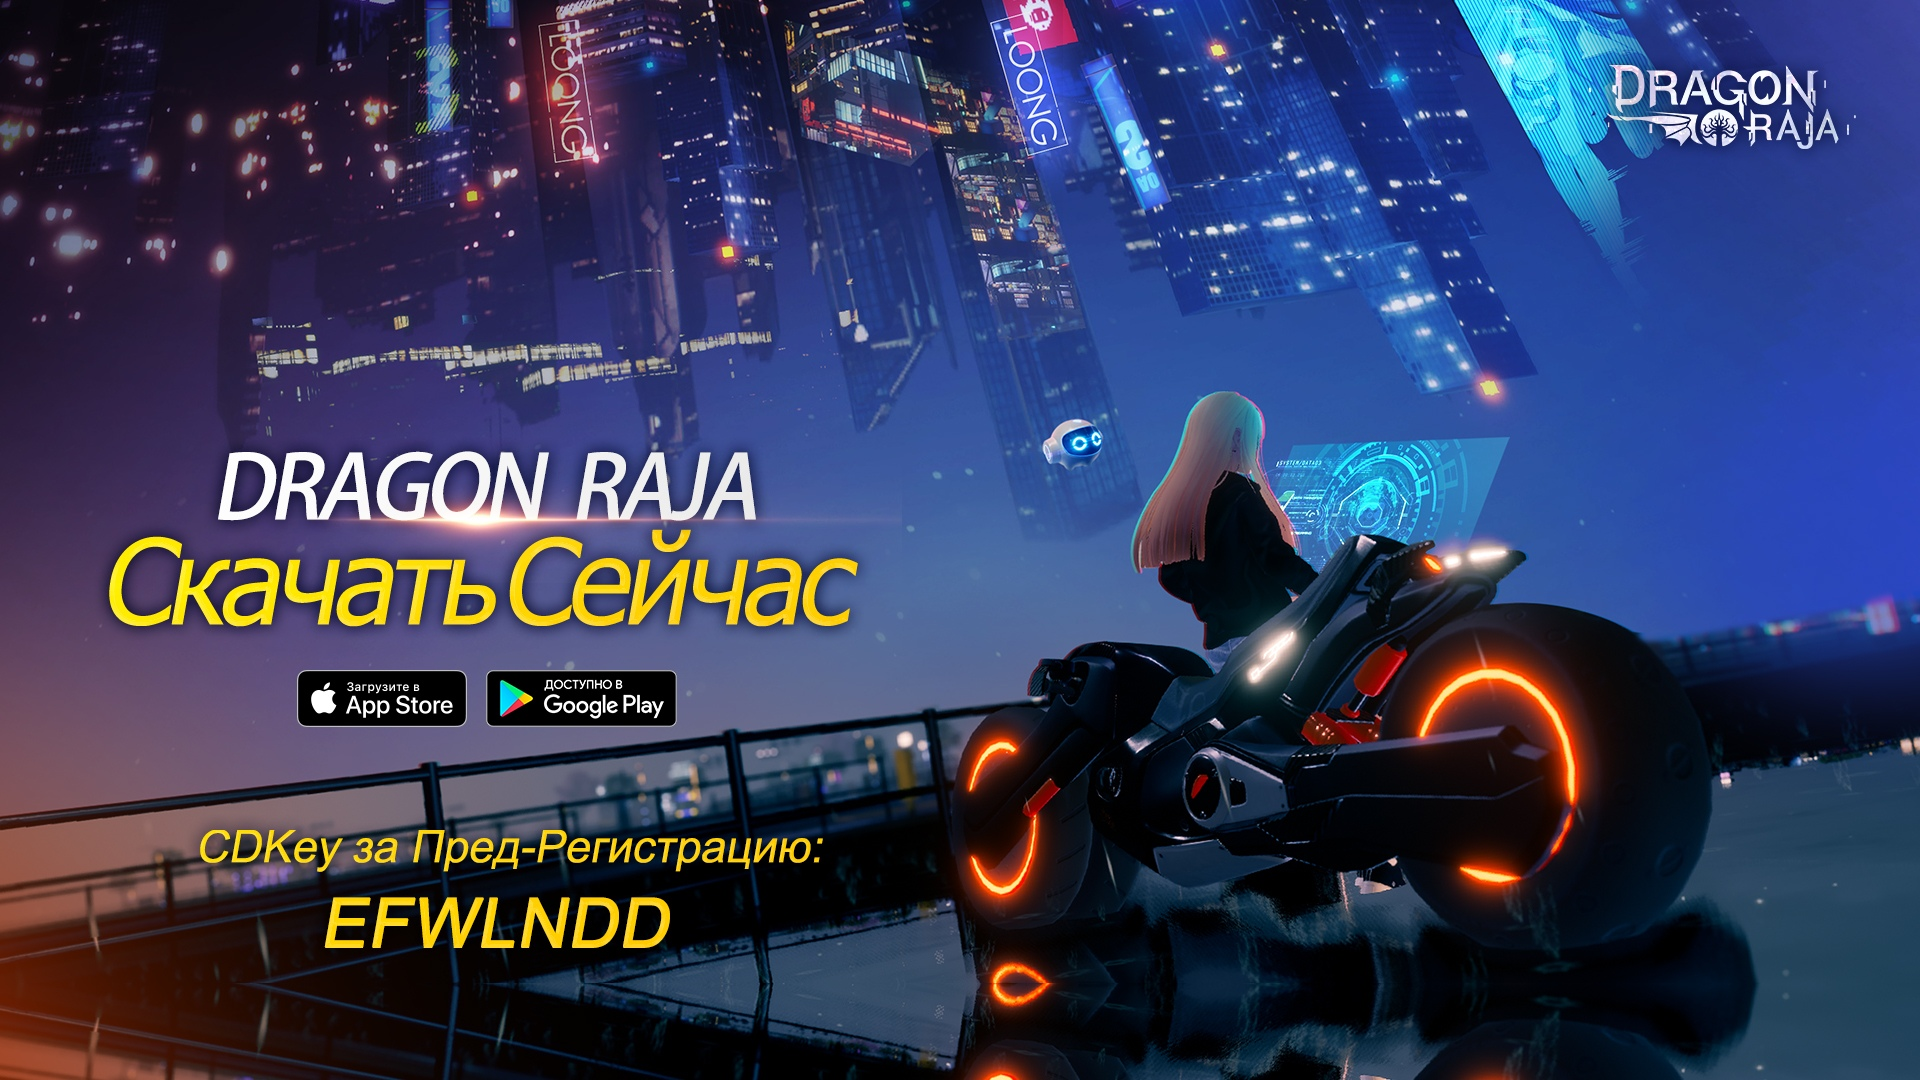 Играть в «Dragon Raja» на ПК с LDPlayer